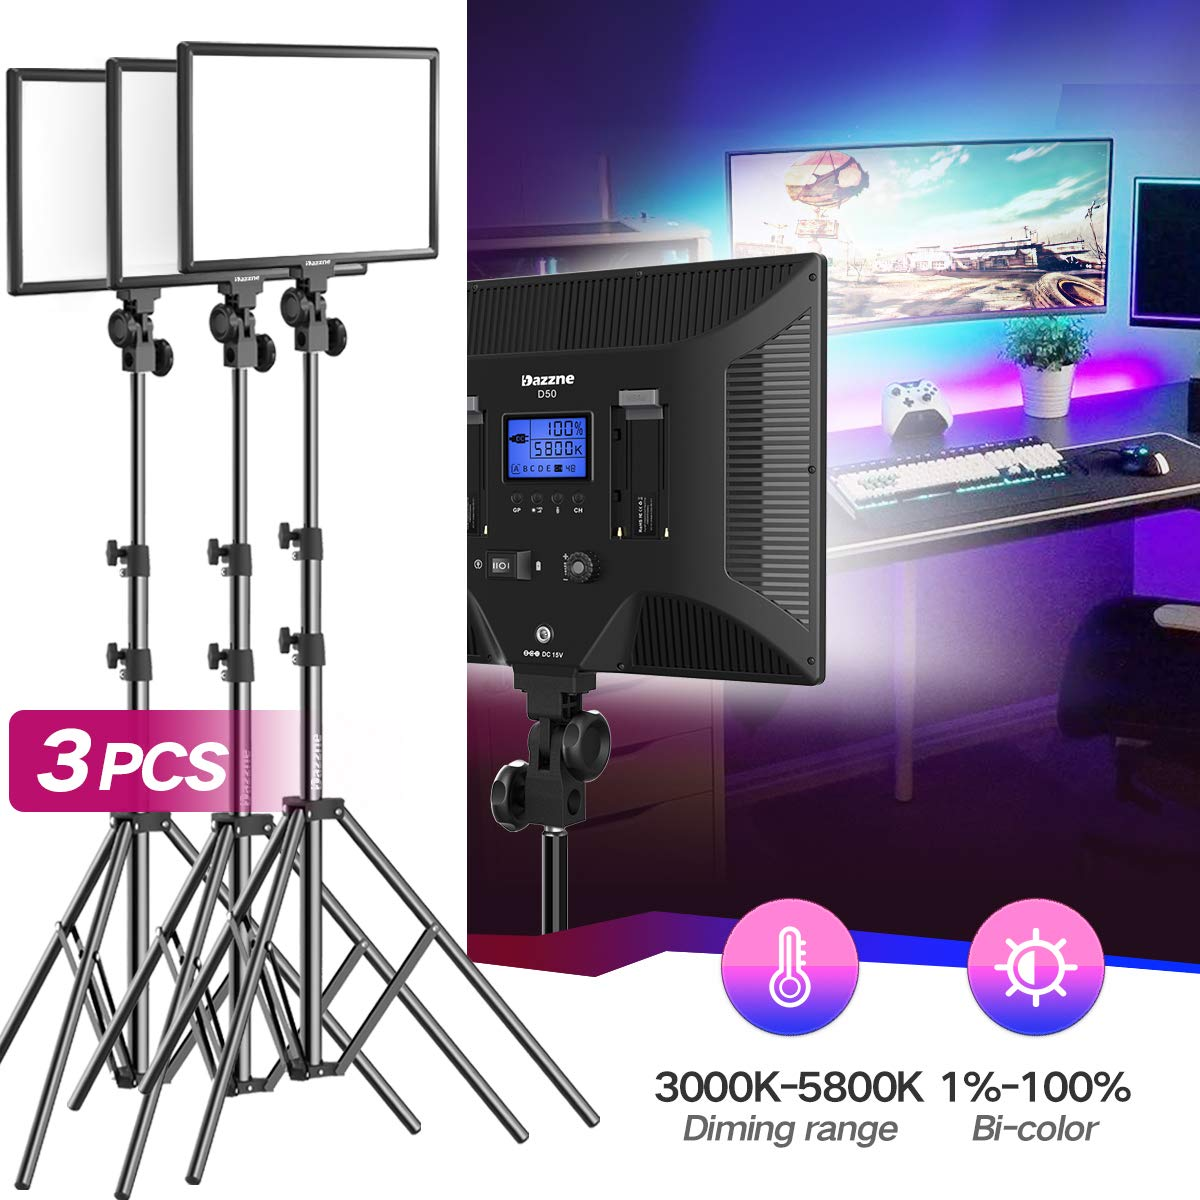 Bi-Color LED Video Light Stand Lighting Kit 3 Pack 15.4'' Large Panel 3000K-5800K 45W 4800LM Dimmable 1-100% Brightness Soft Light for YouTube Game Video Shooting Live Stream Photography Lighting by Dazzne